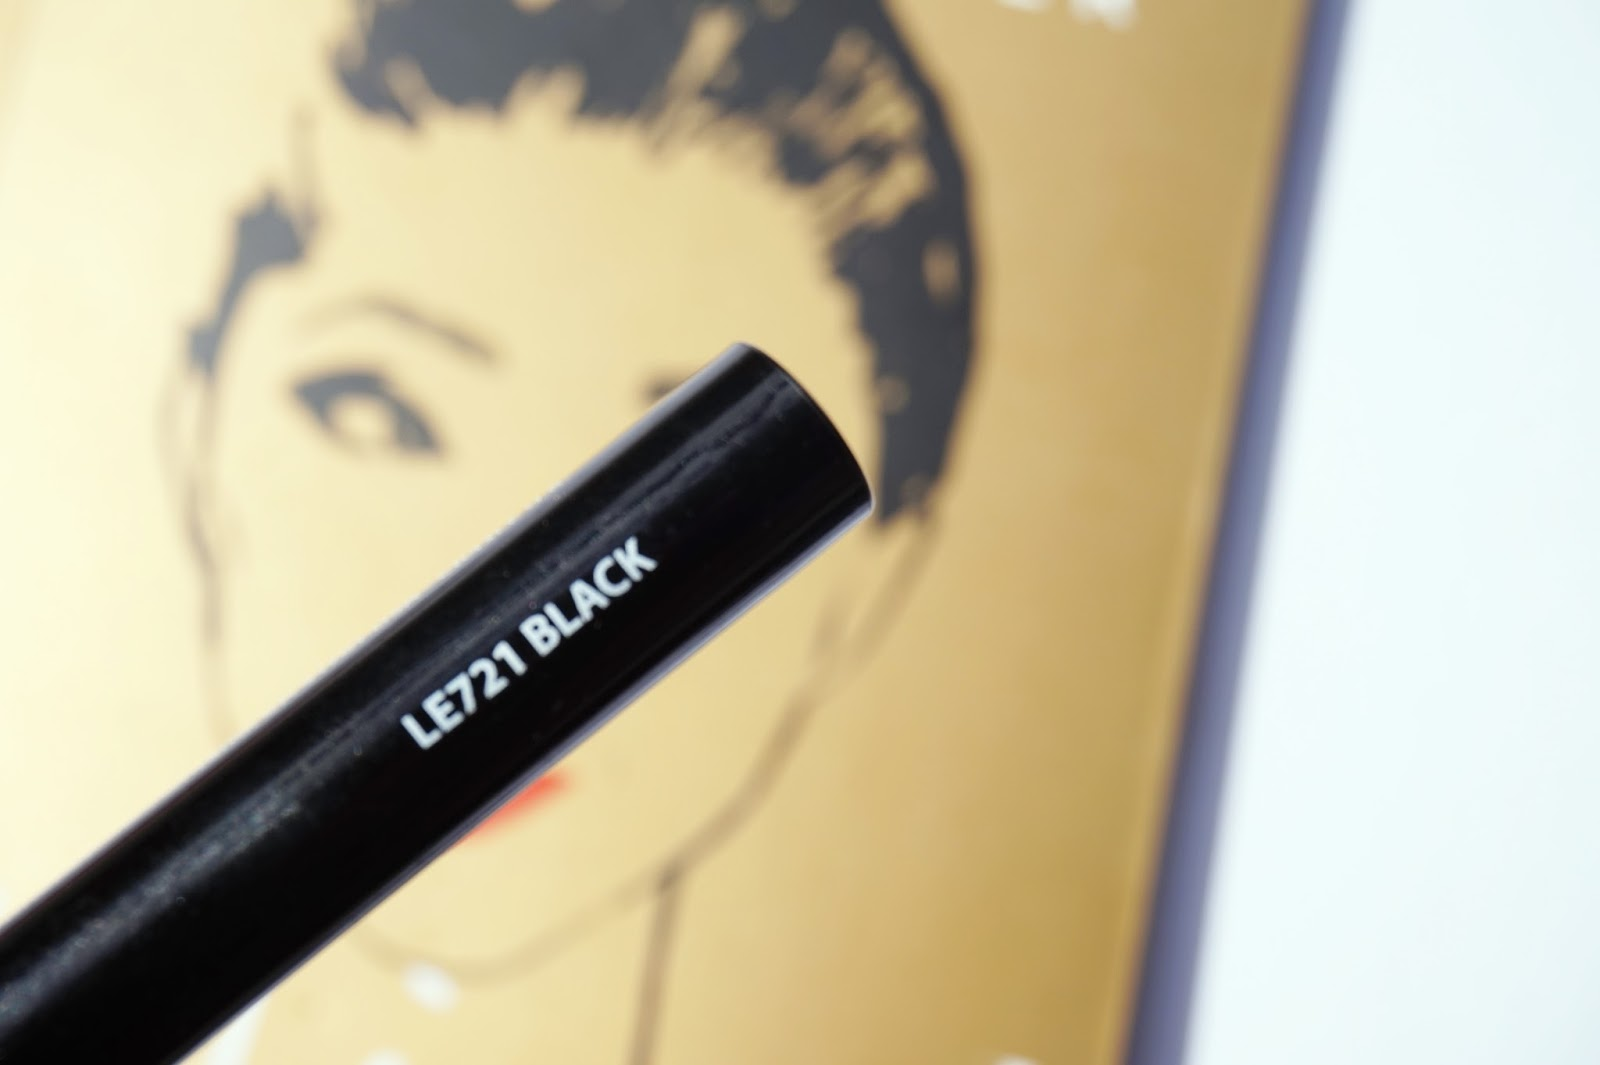 LA Girl FineLine Eyeliner in LE721 Black